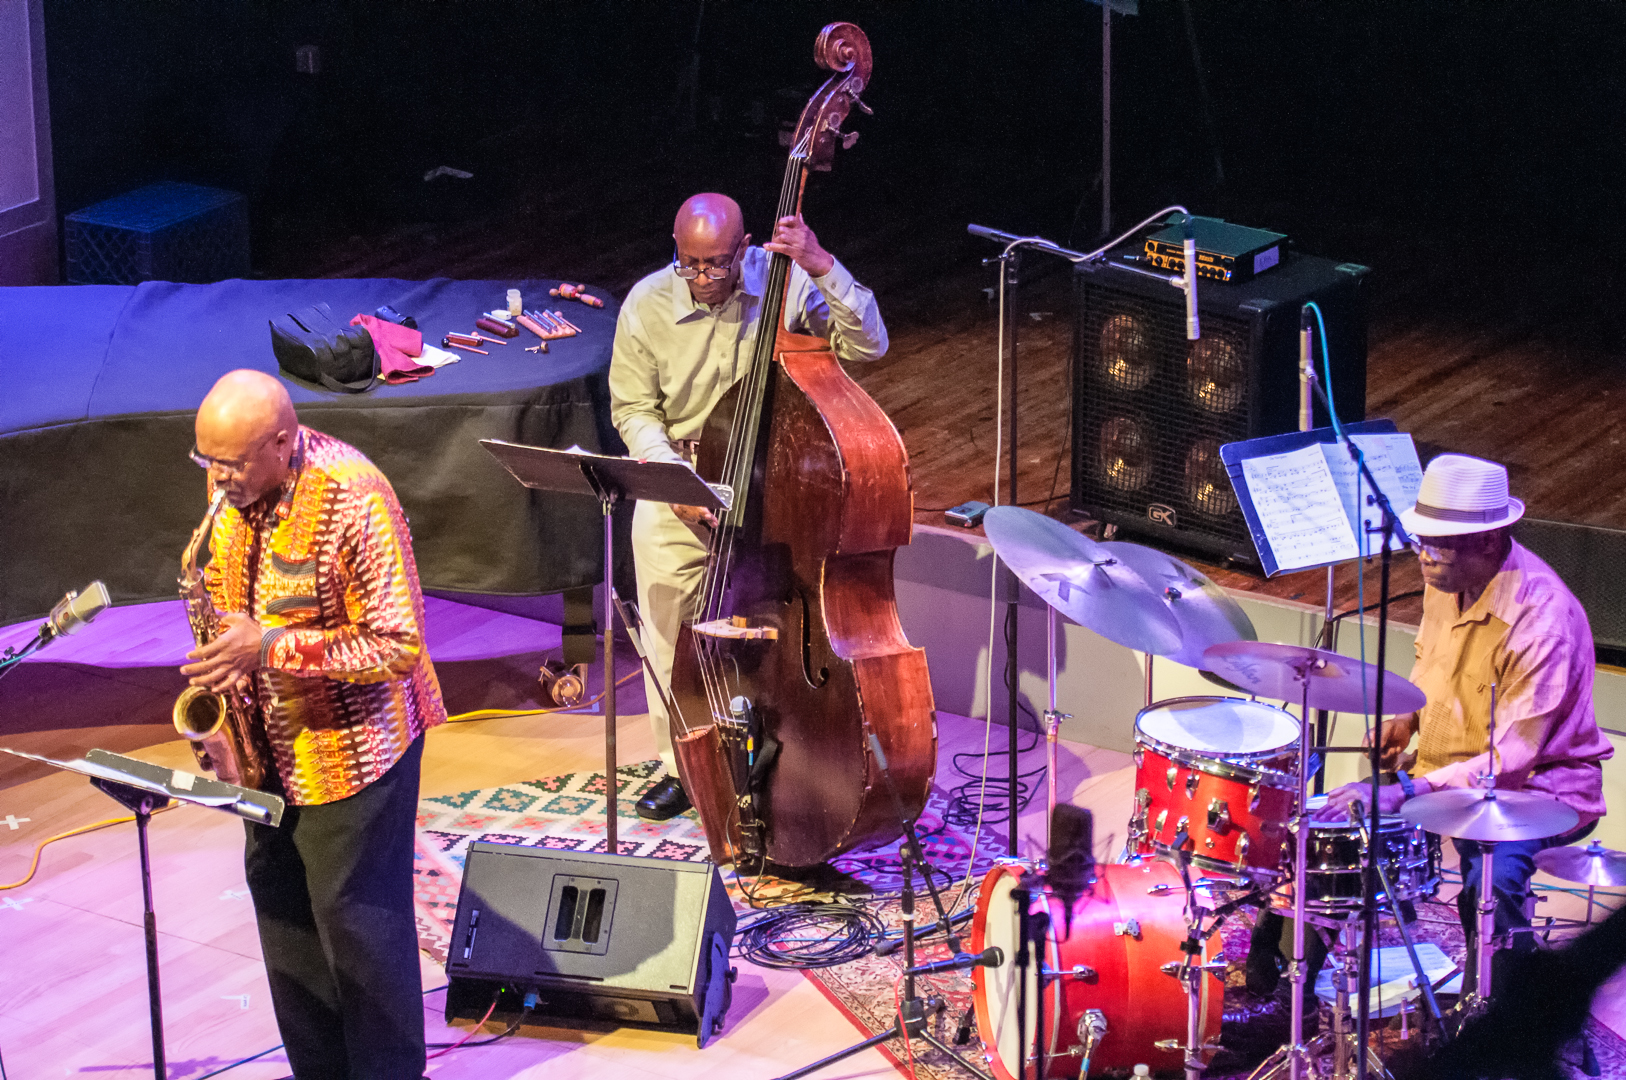 Oliver lake, reggie workman and andrew cyrille with trio 3 at the vision festival 2012